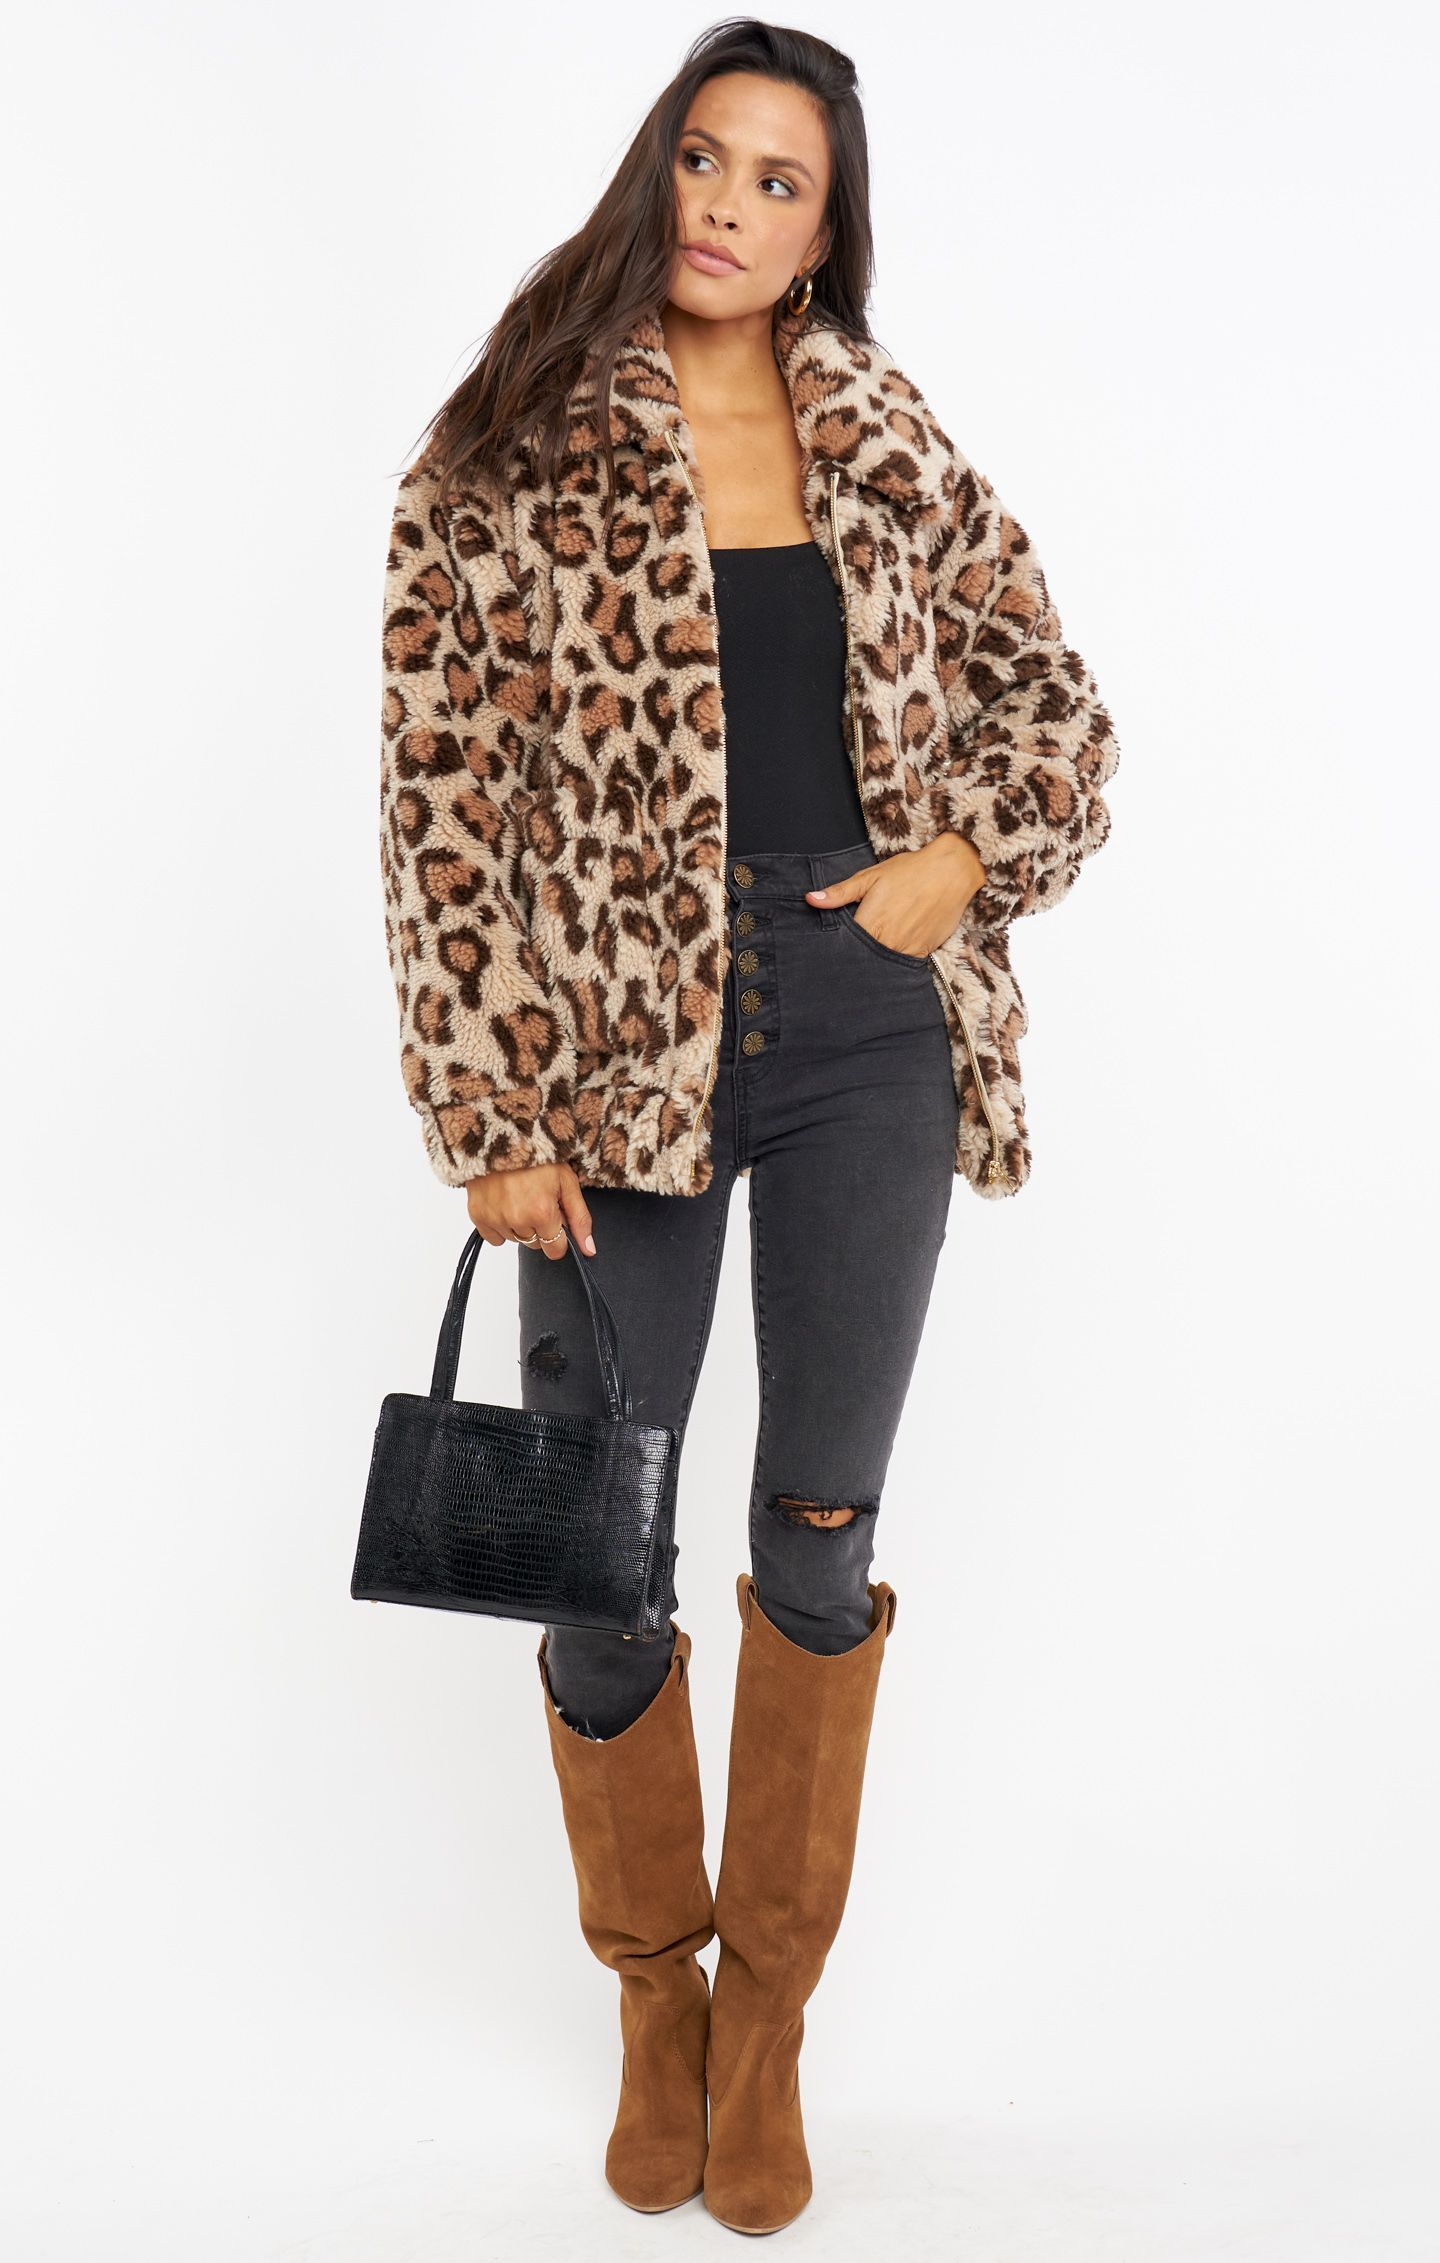 Load image into Gallery viewer, Soho Button Up Skinnies - Distressed Black & Cordelia Jacket Leopard Fleece | Show Me Your Mumu - Women's Pants